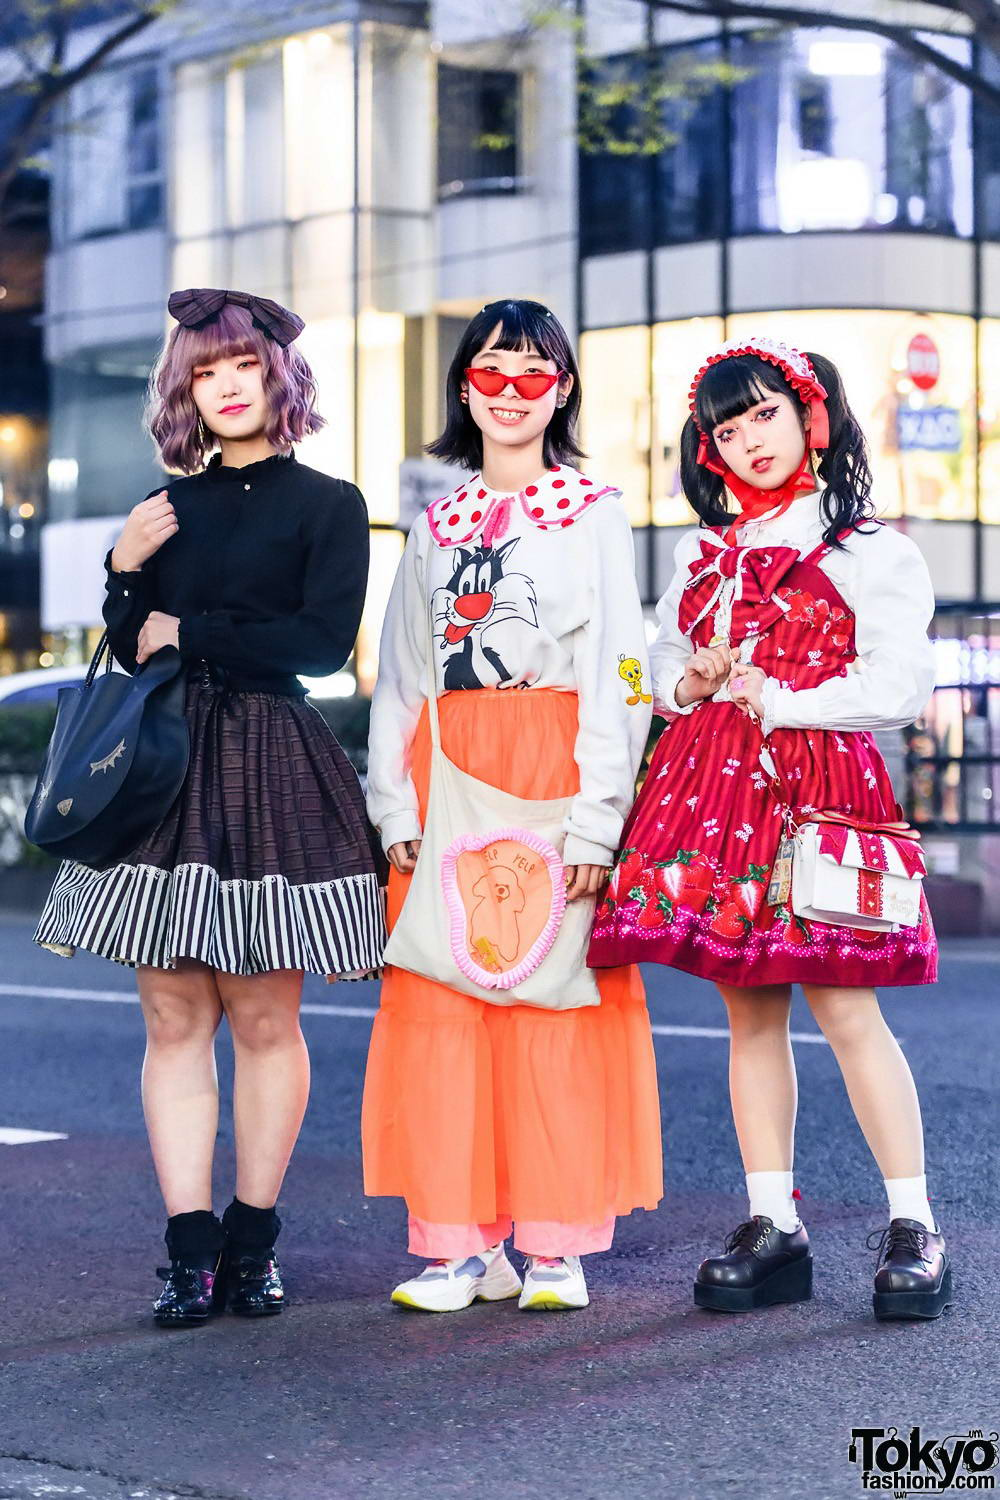 Tokyo Street Fashion And Style (40 Photos)